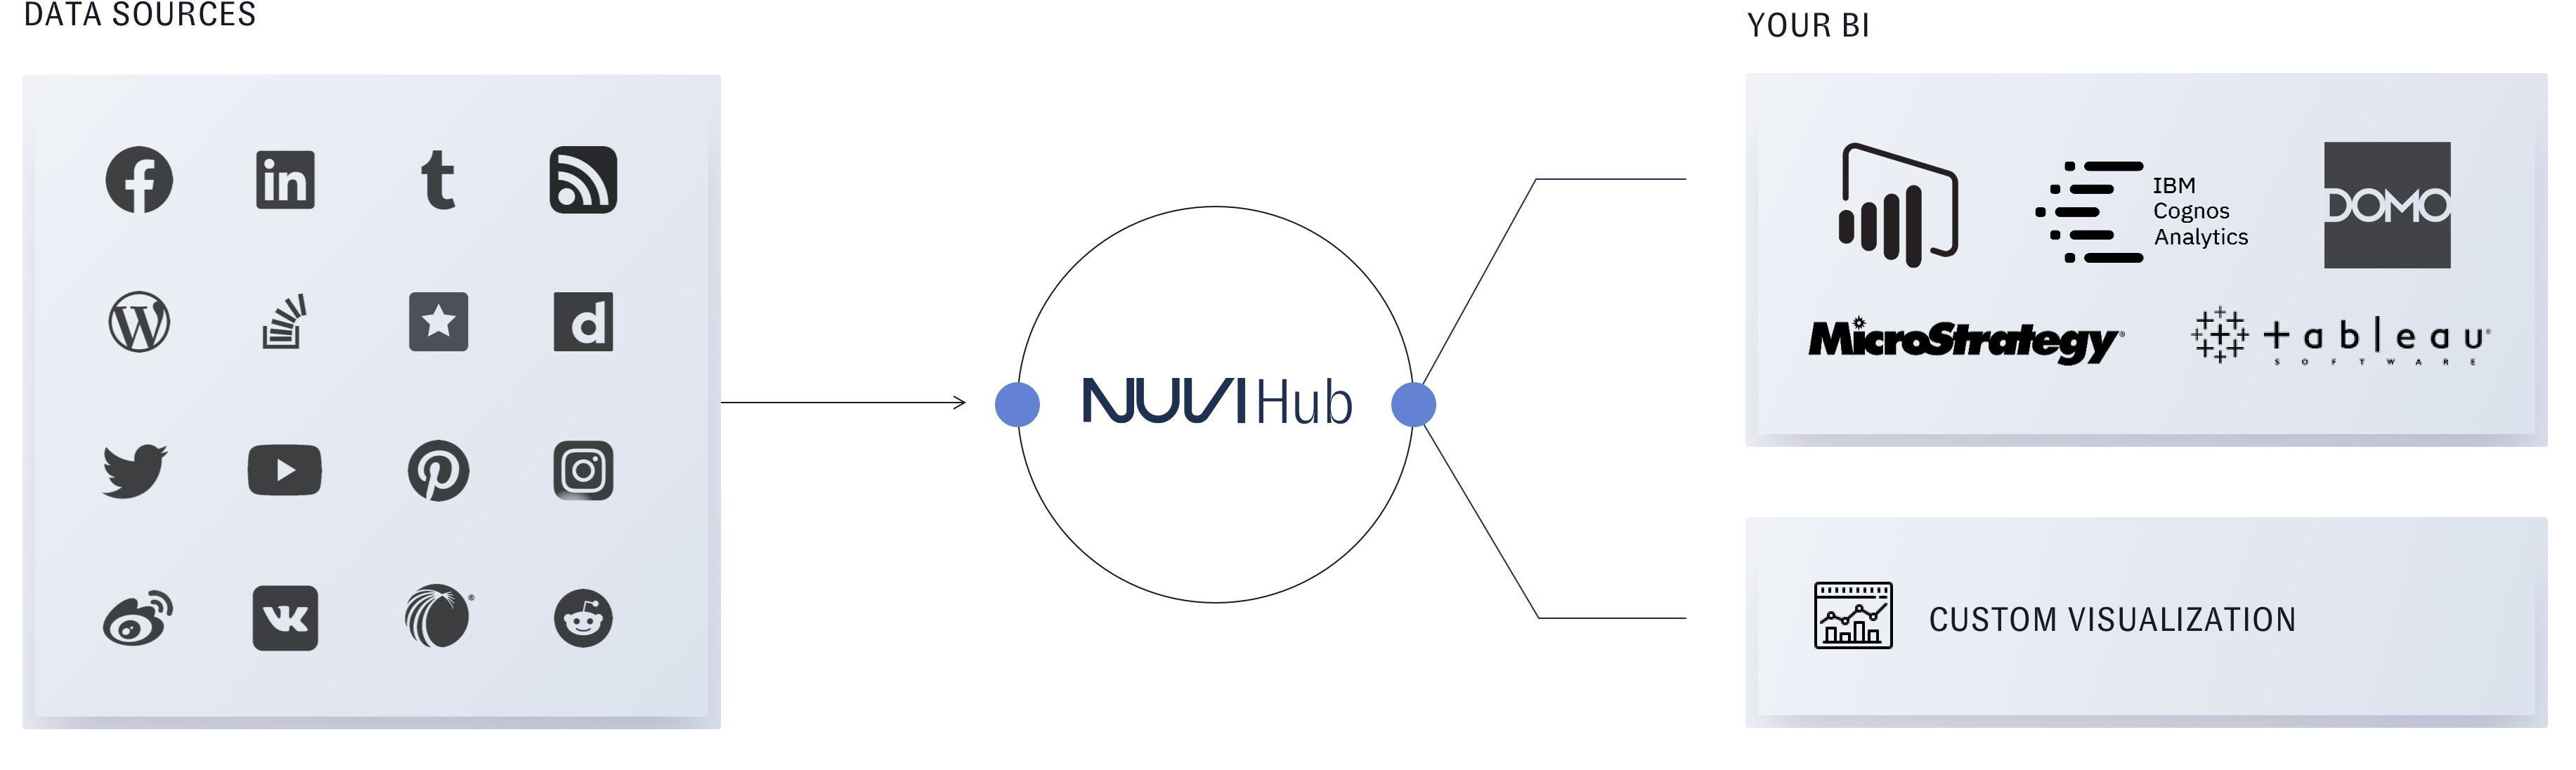 Nuvi Hub allows marketers and data analysts to take the data that Nuvi gathers, integrate it with their BI tools, and showcase the data however they'd like